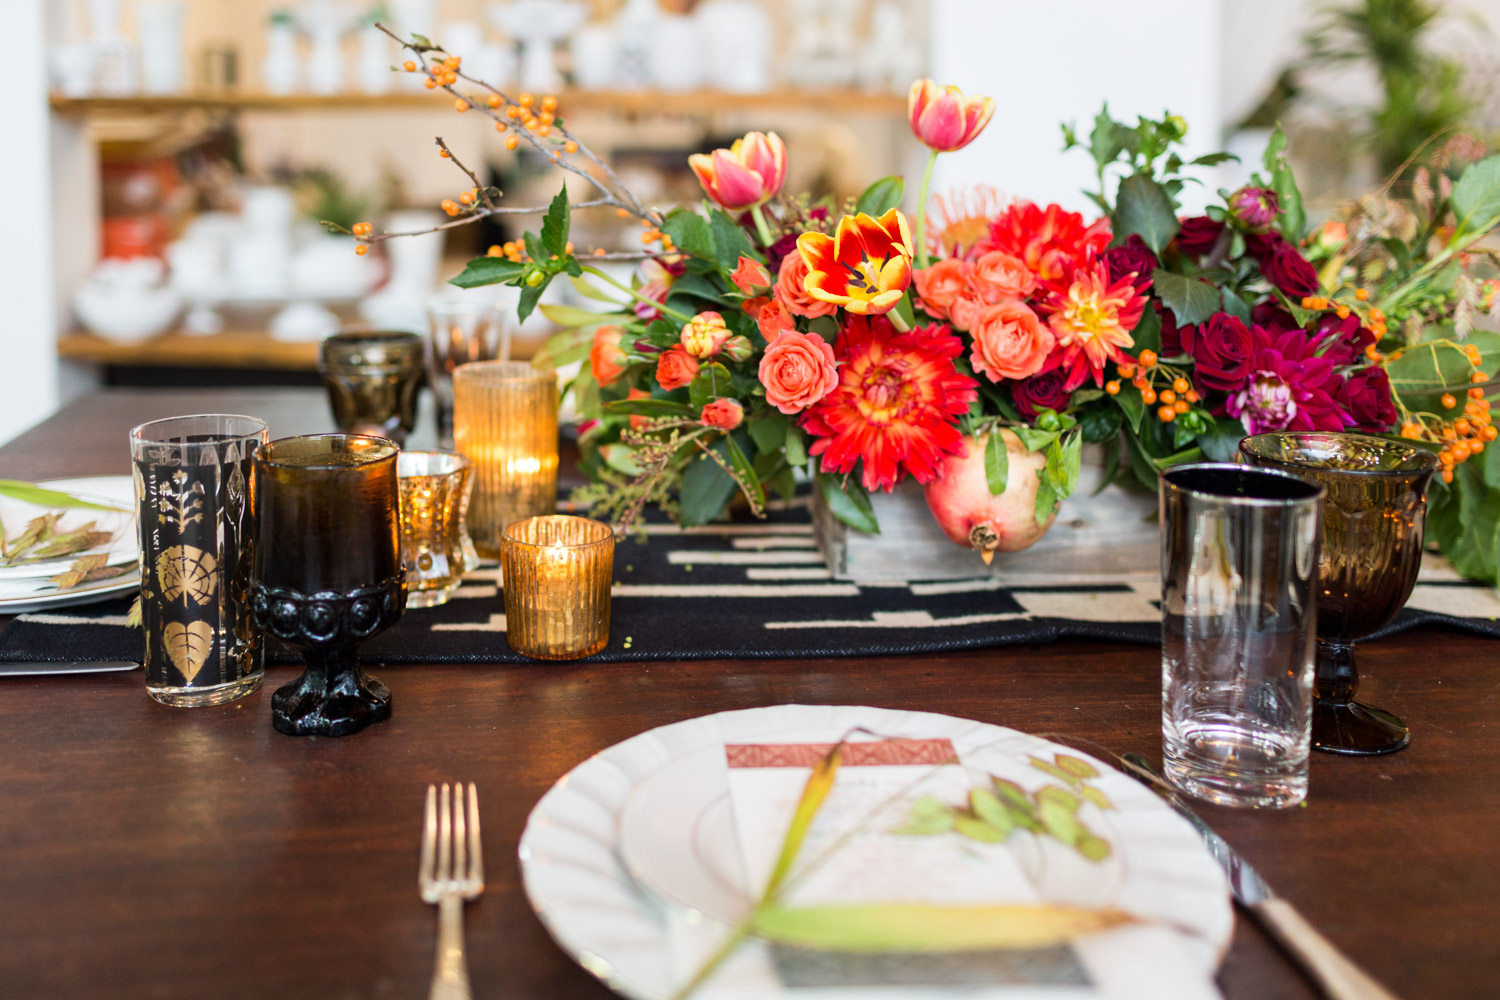 ... Isari Floral Workshop For A Fall Tablescape With Reds Greens Yellows  And Blacks, Cavin Elizabeth